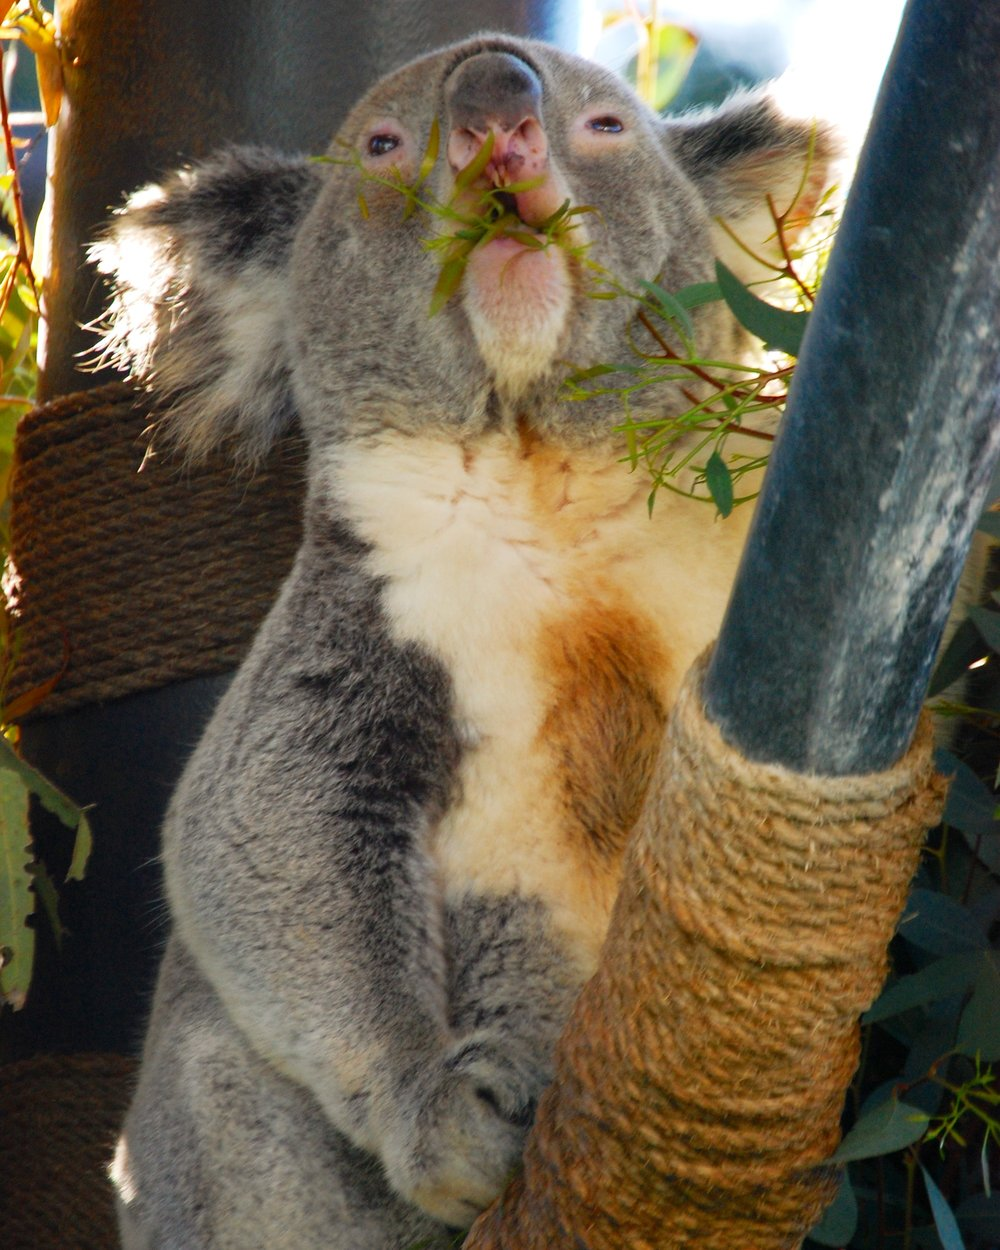 7. Koalas - Koalas– In the Australian Outback section, you can find these sleepy, cuddly koalas. A common misunderstanding about koalas is people often think they are bears. This is not the case, because they simply don't meet the koalafications! Koalas are nocturnal, but every so often they will open their sleepy little eyes to peak at their bamboo!